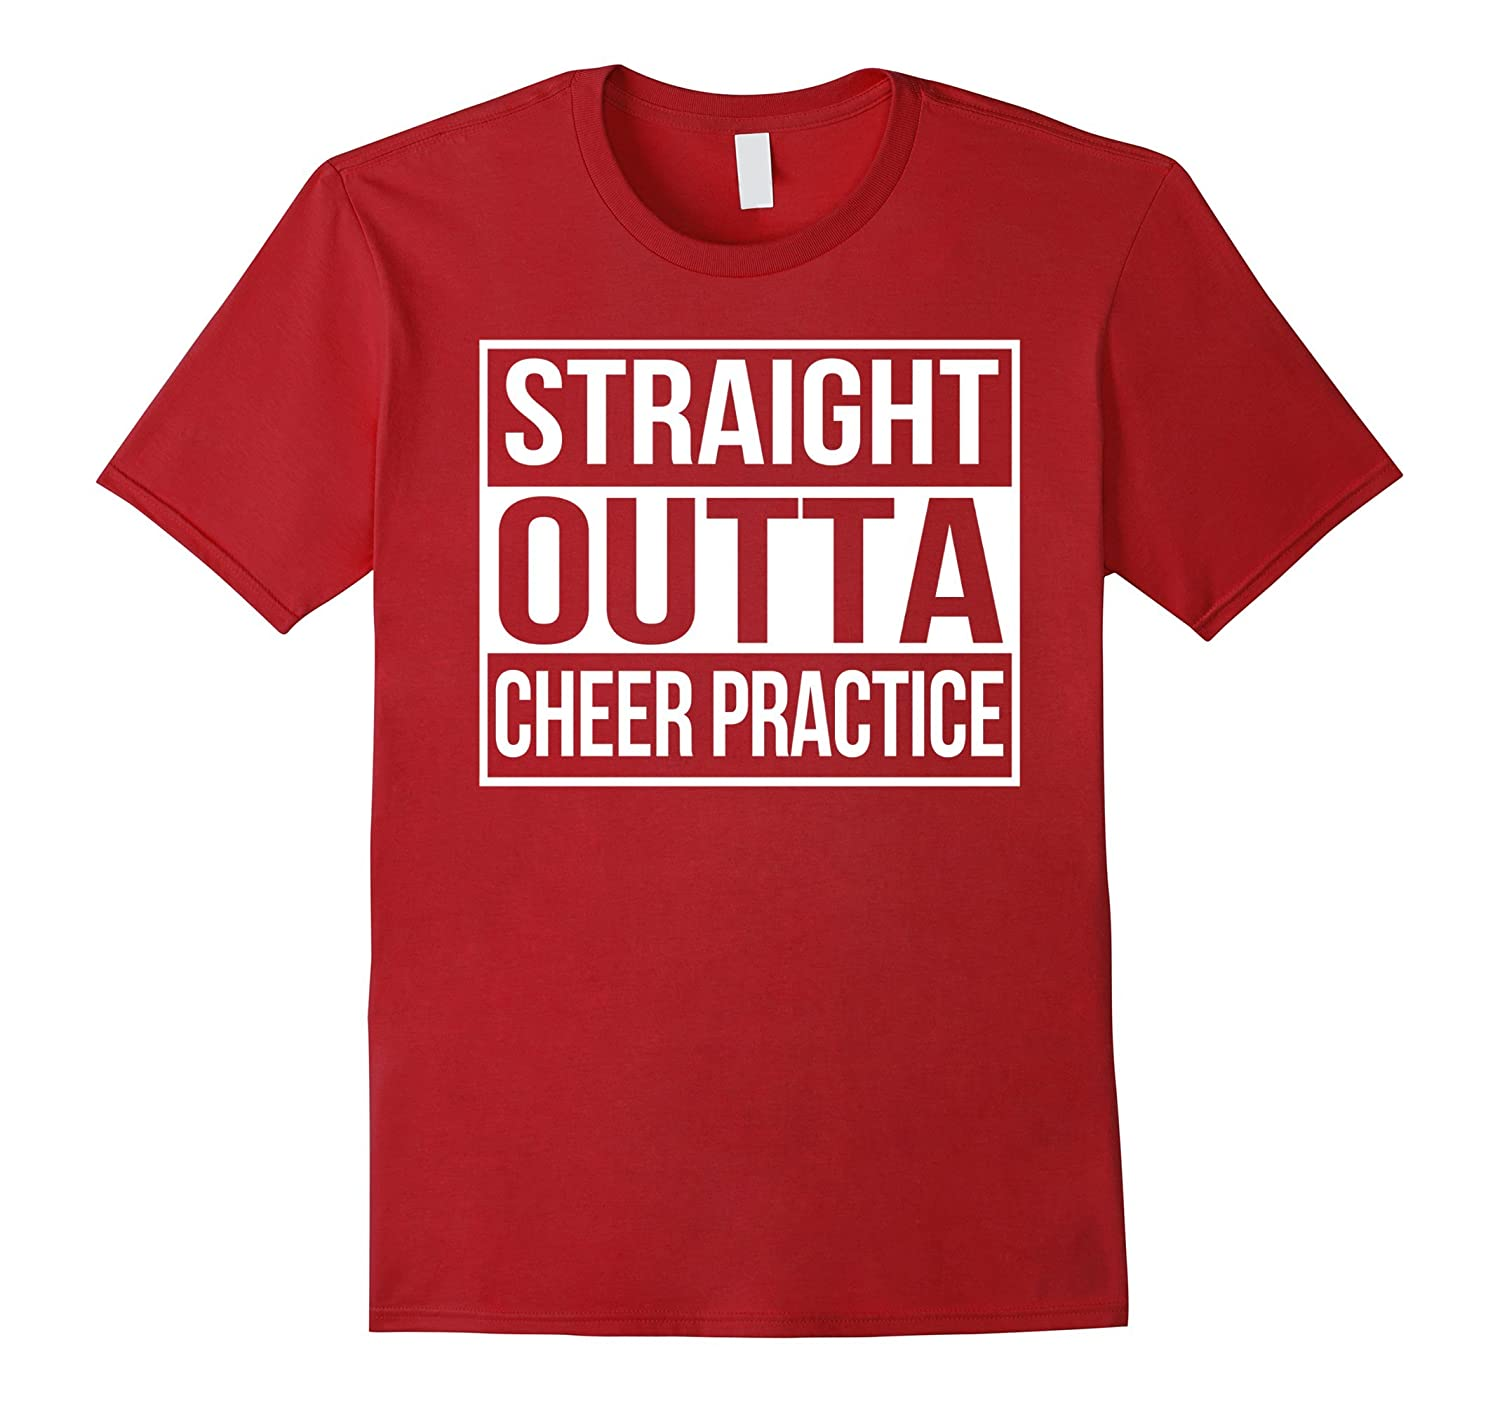 3a0a306f53 Straight Outta Cheer Practice - Funny Cheerleading Shirts-ANZ ...